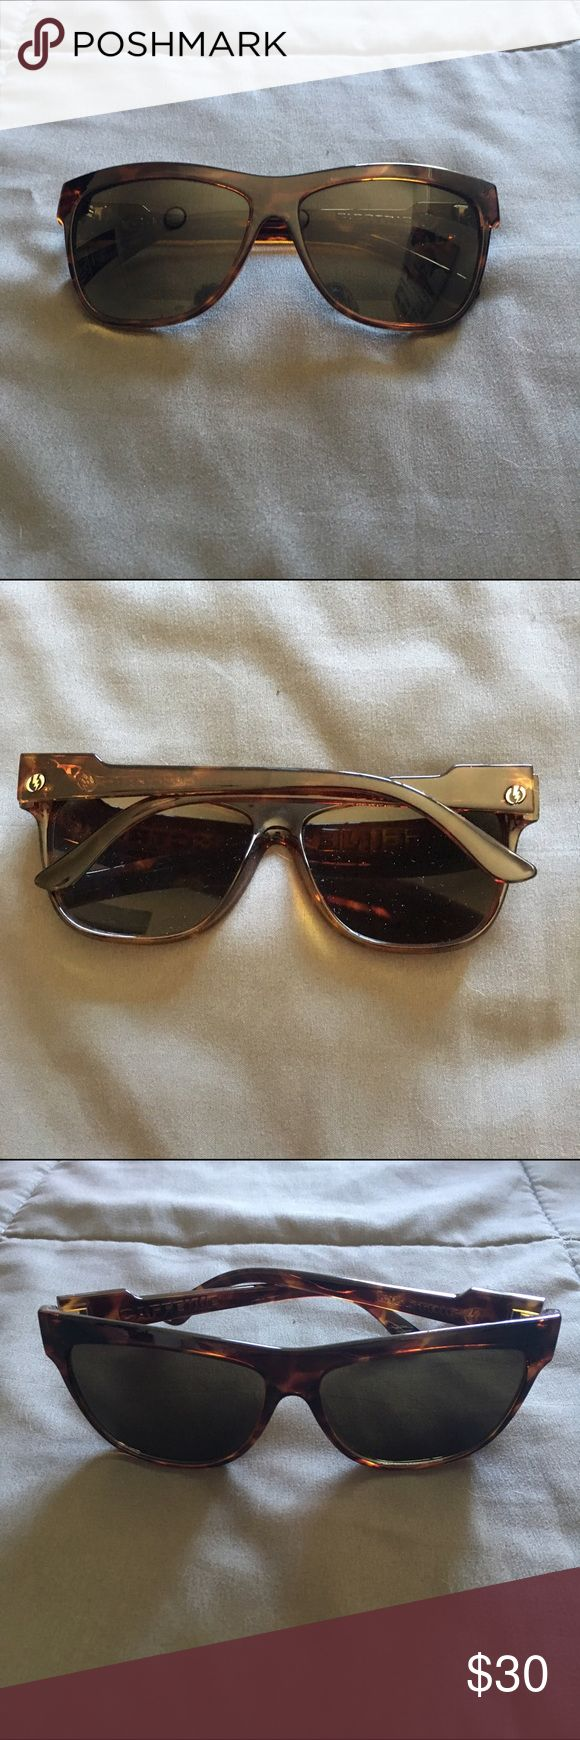 Women's Electric Sunglasses Women's electric sunglasses. Tortoise color. Worn once. No scratches. Comes with soft pouch. electric Accessories Sunglasses